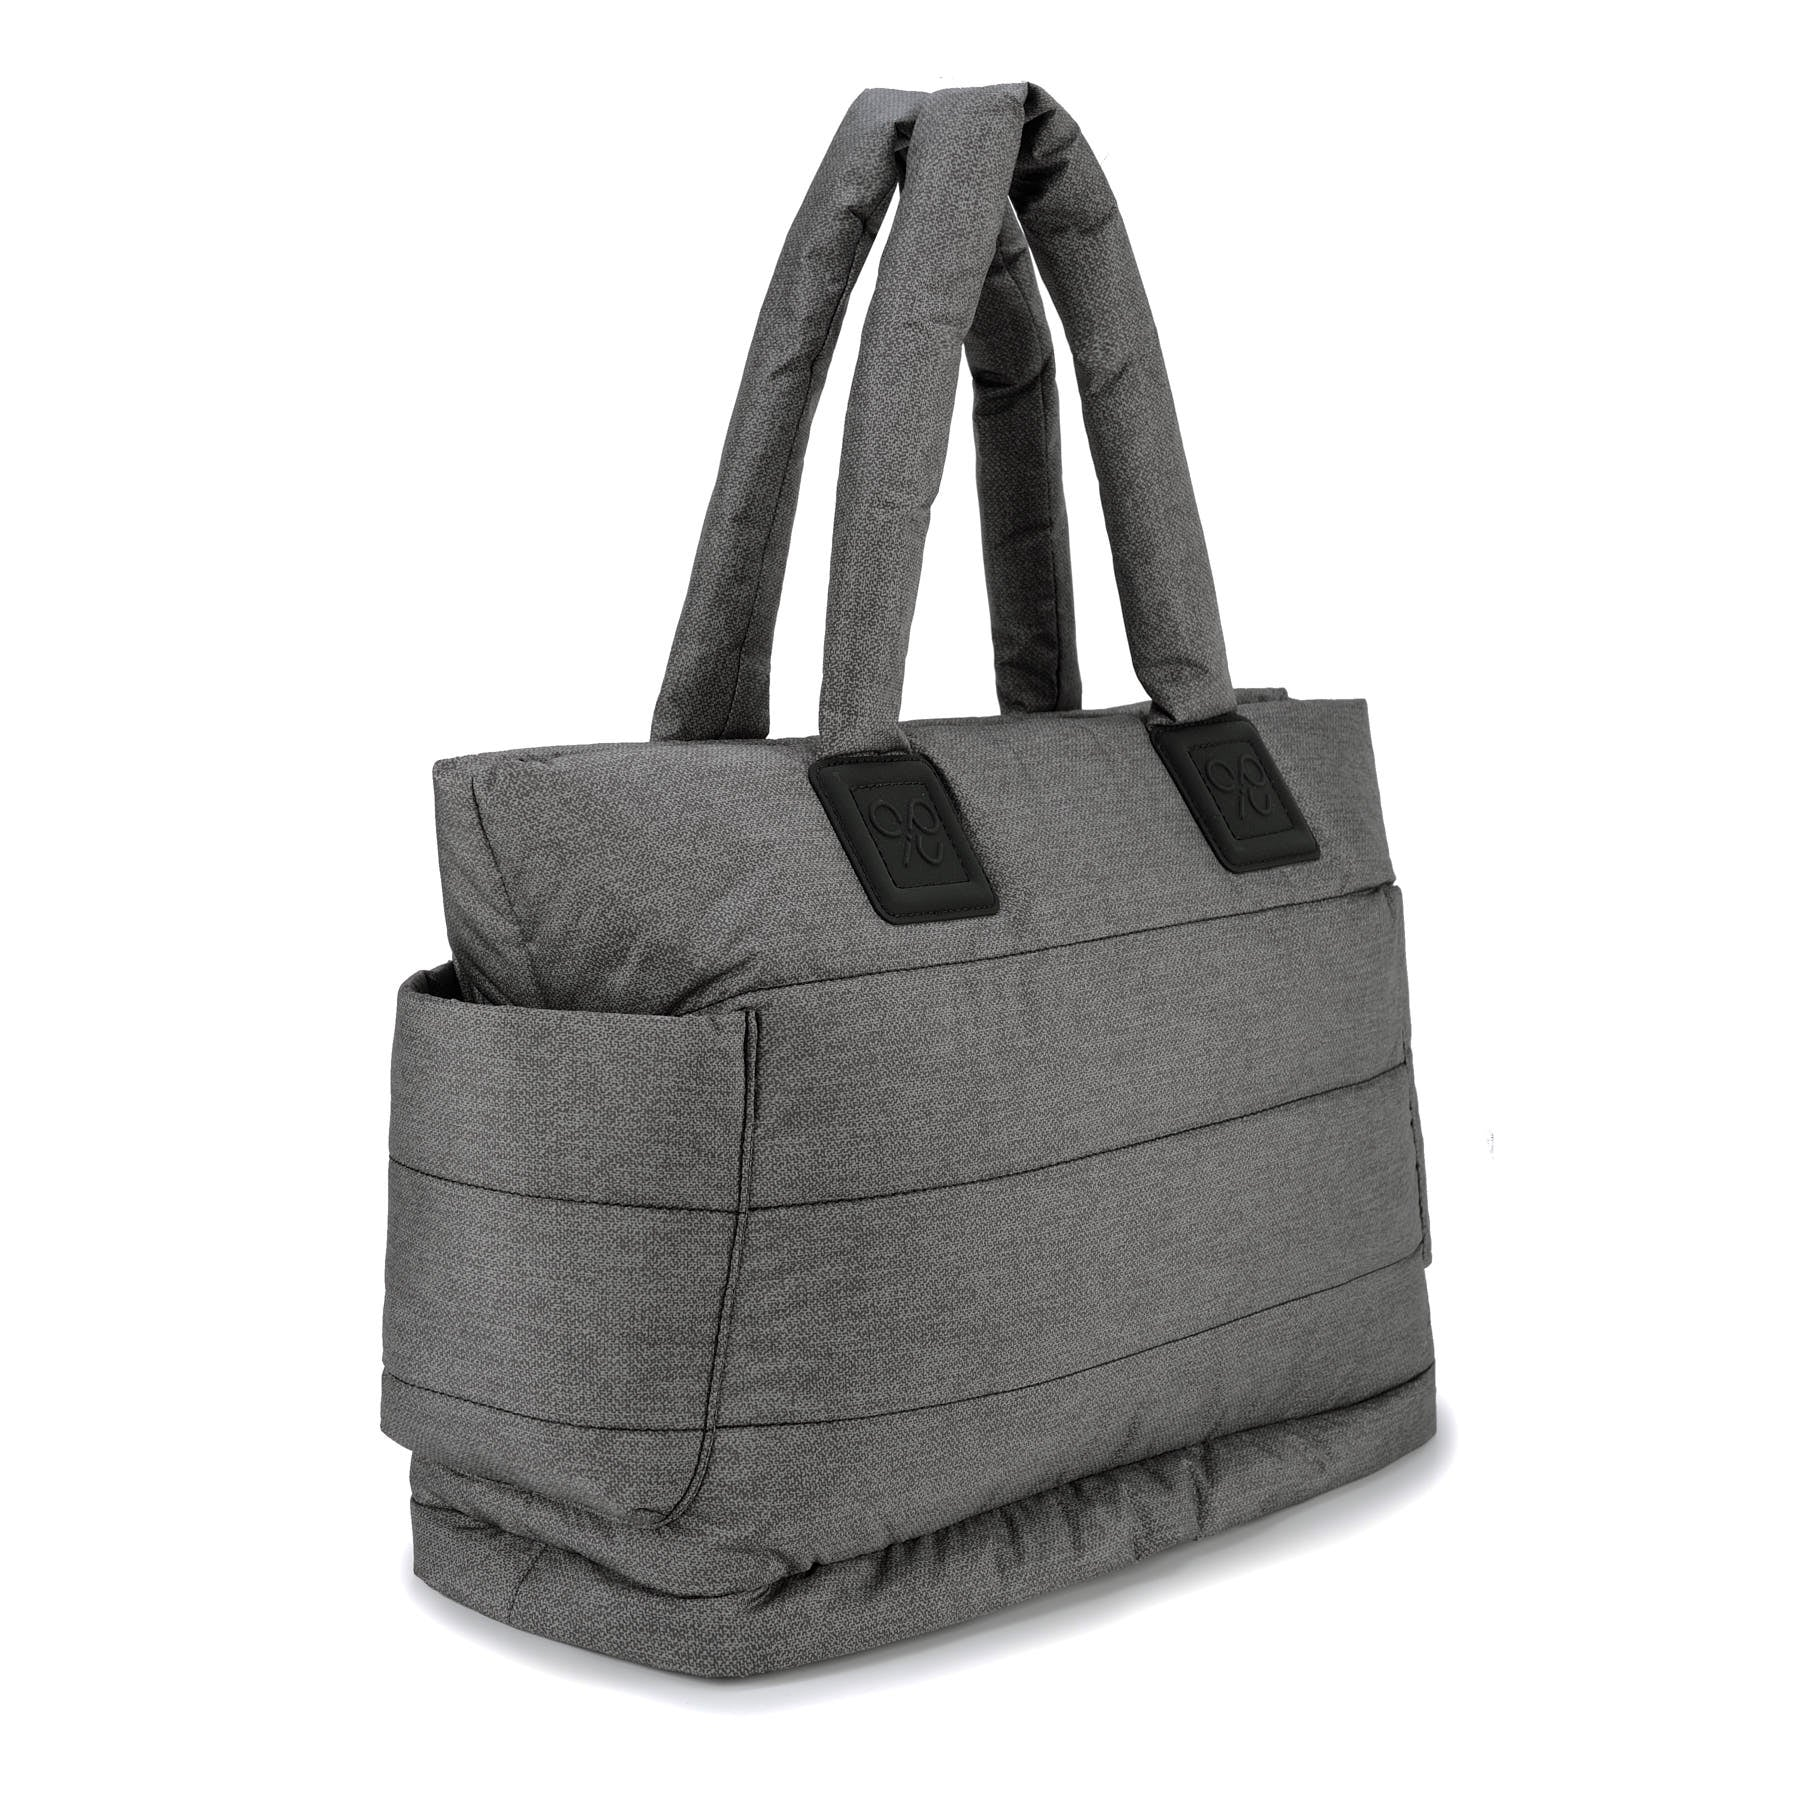 Airy Nappy Bag - L Tote - England Grey